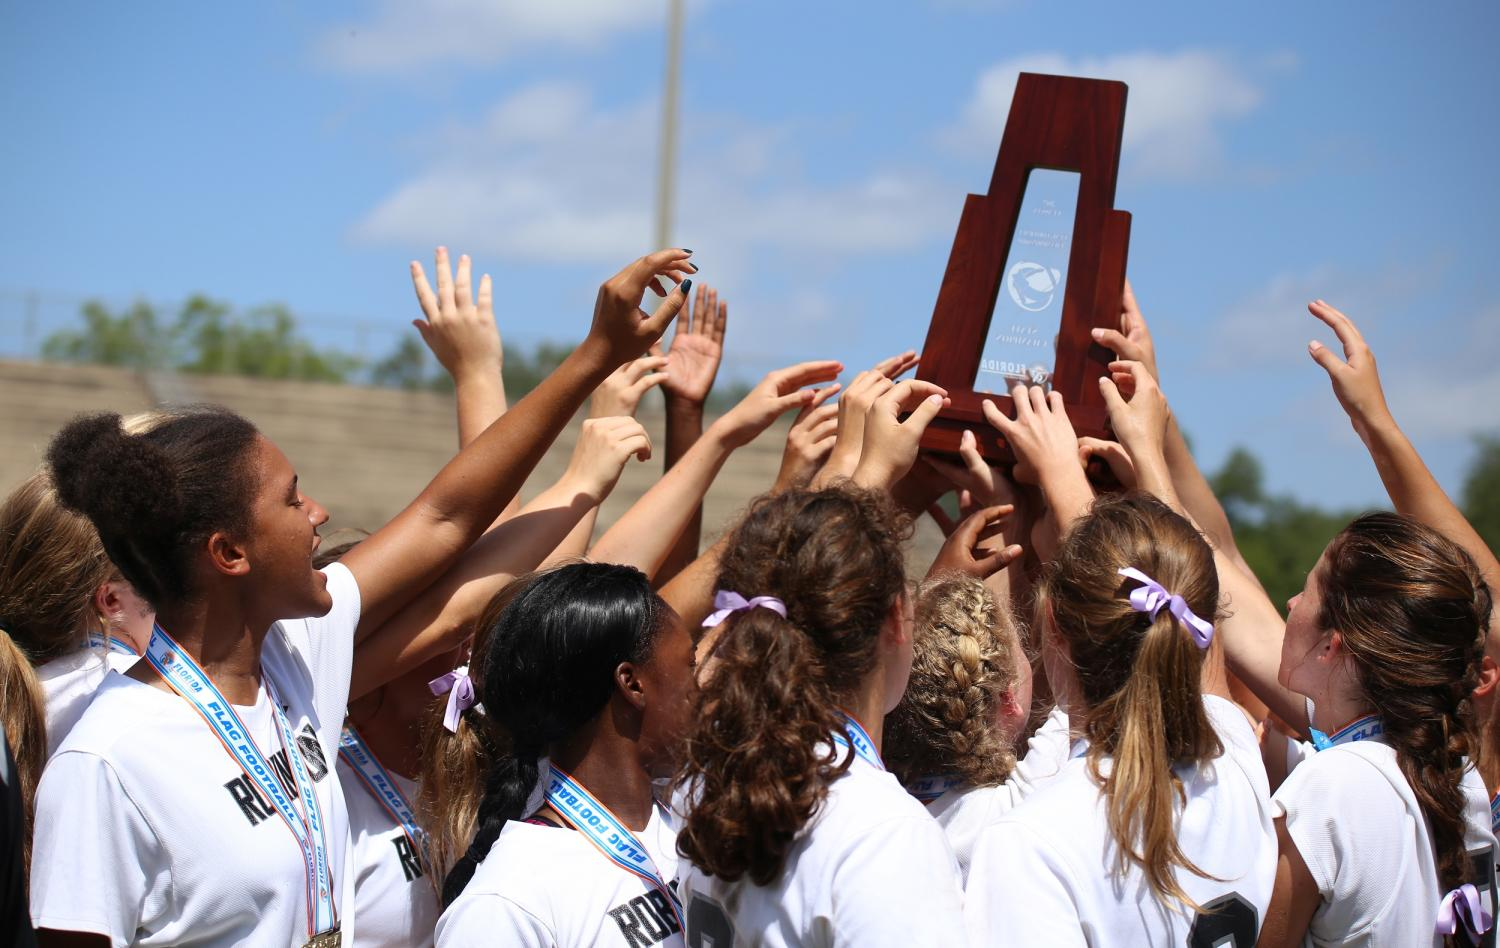 The team holds up the state championship trophy during the final cheer of the season.